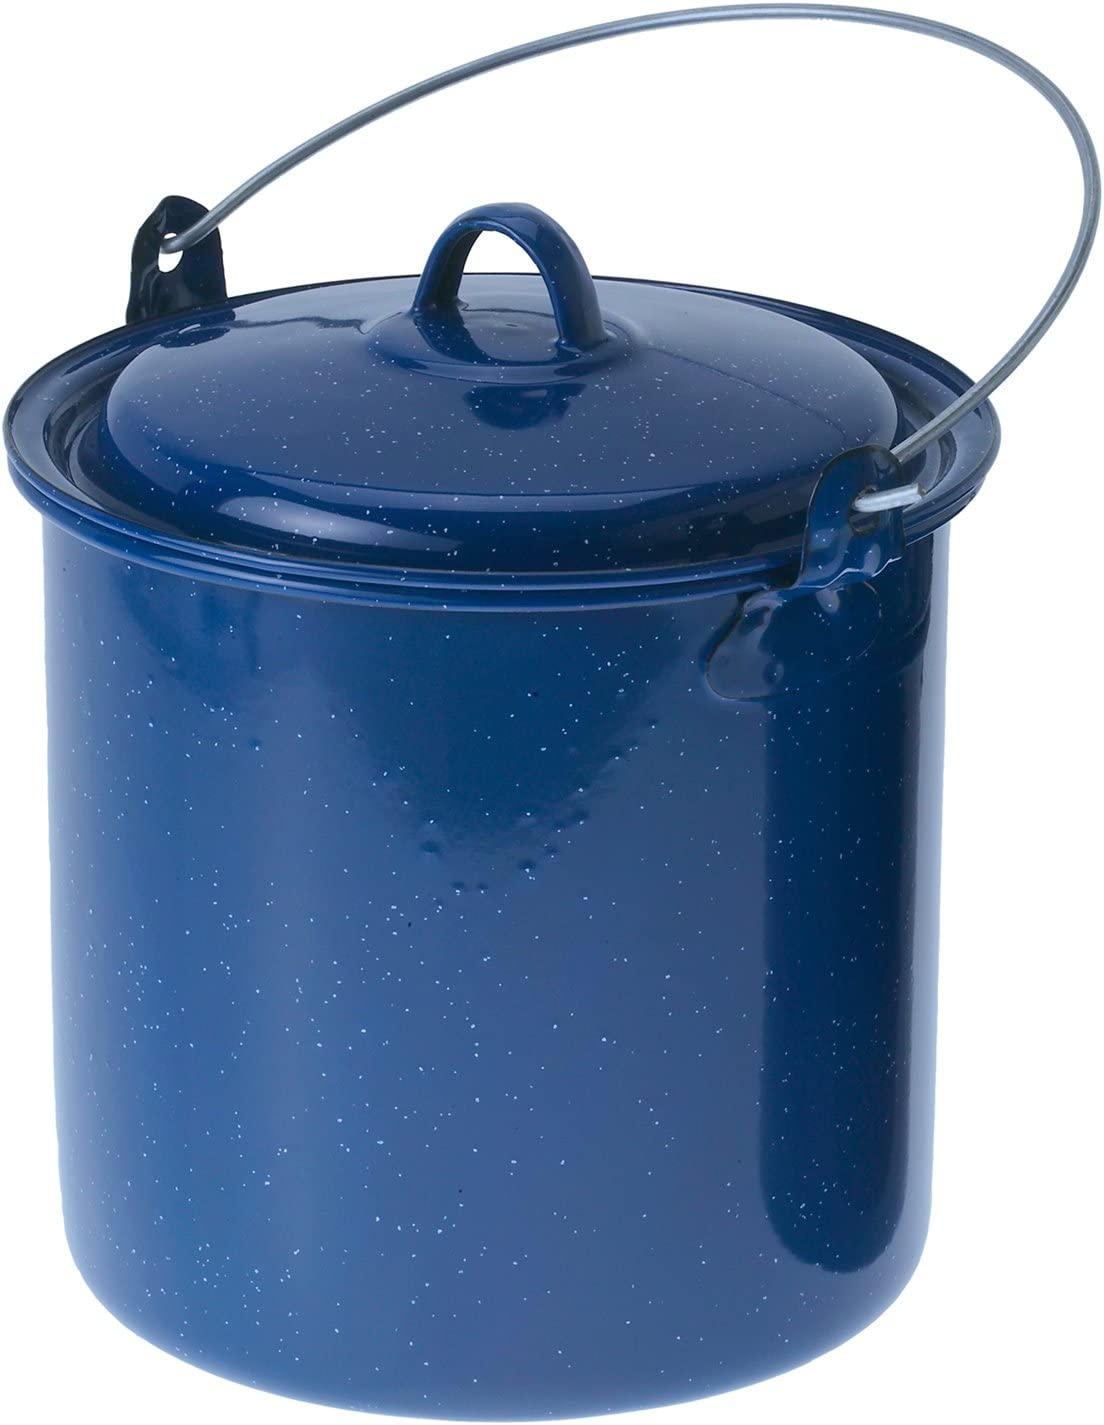 GSI Outdoors Enamled Steel 3.5 qt. Straight Pot with Lid for Campfire Cooking, Home or Cabin